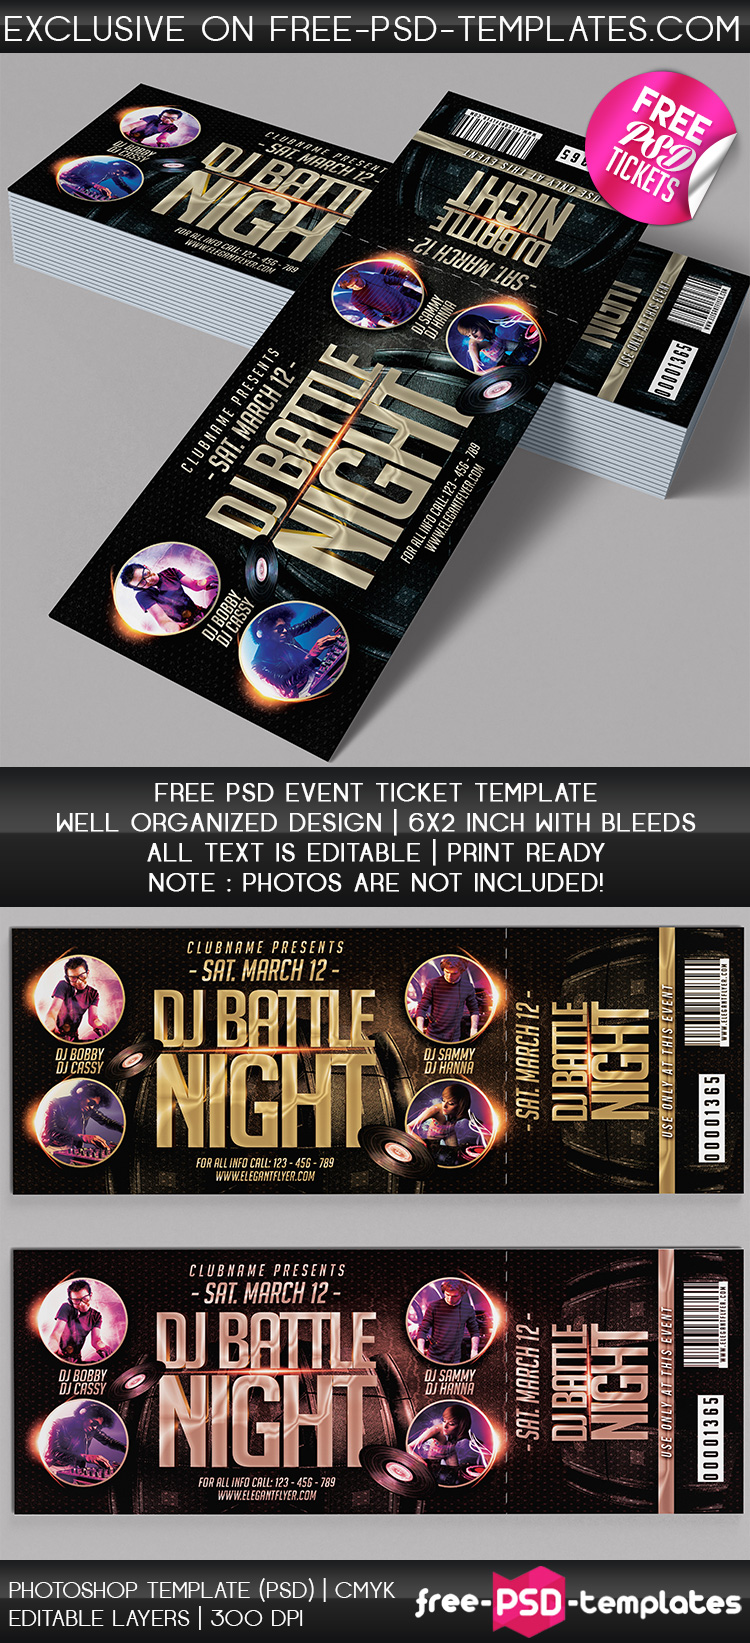 preview_free_psd_event_tickets